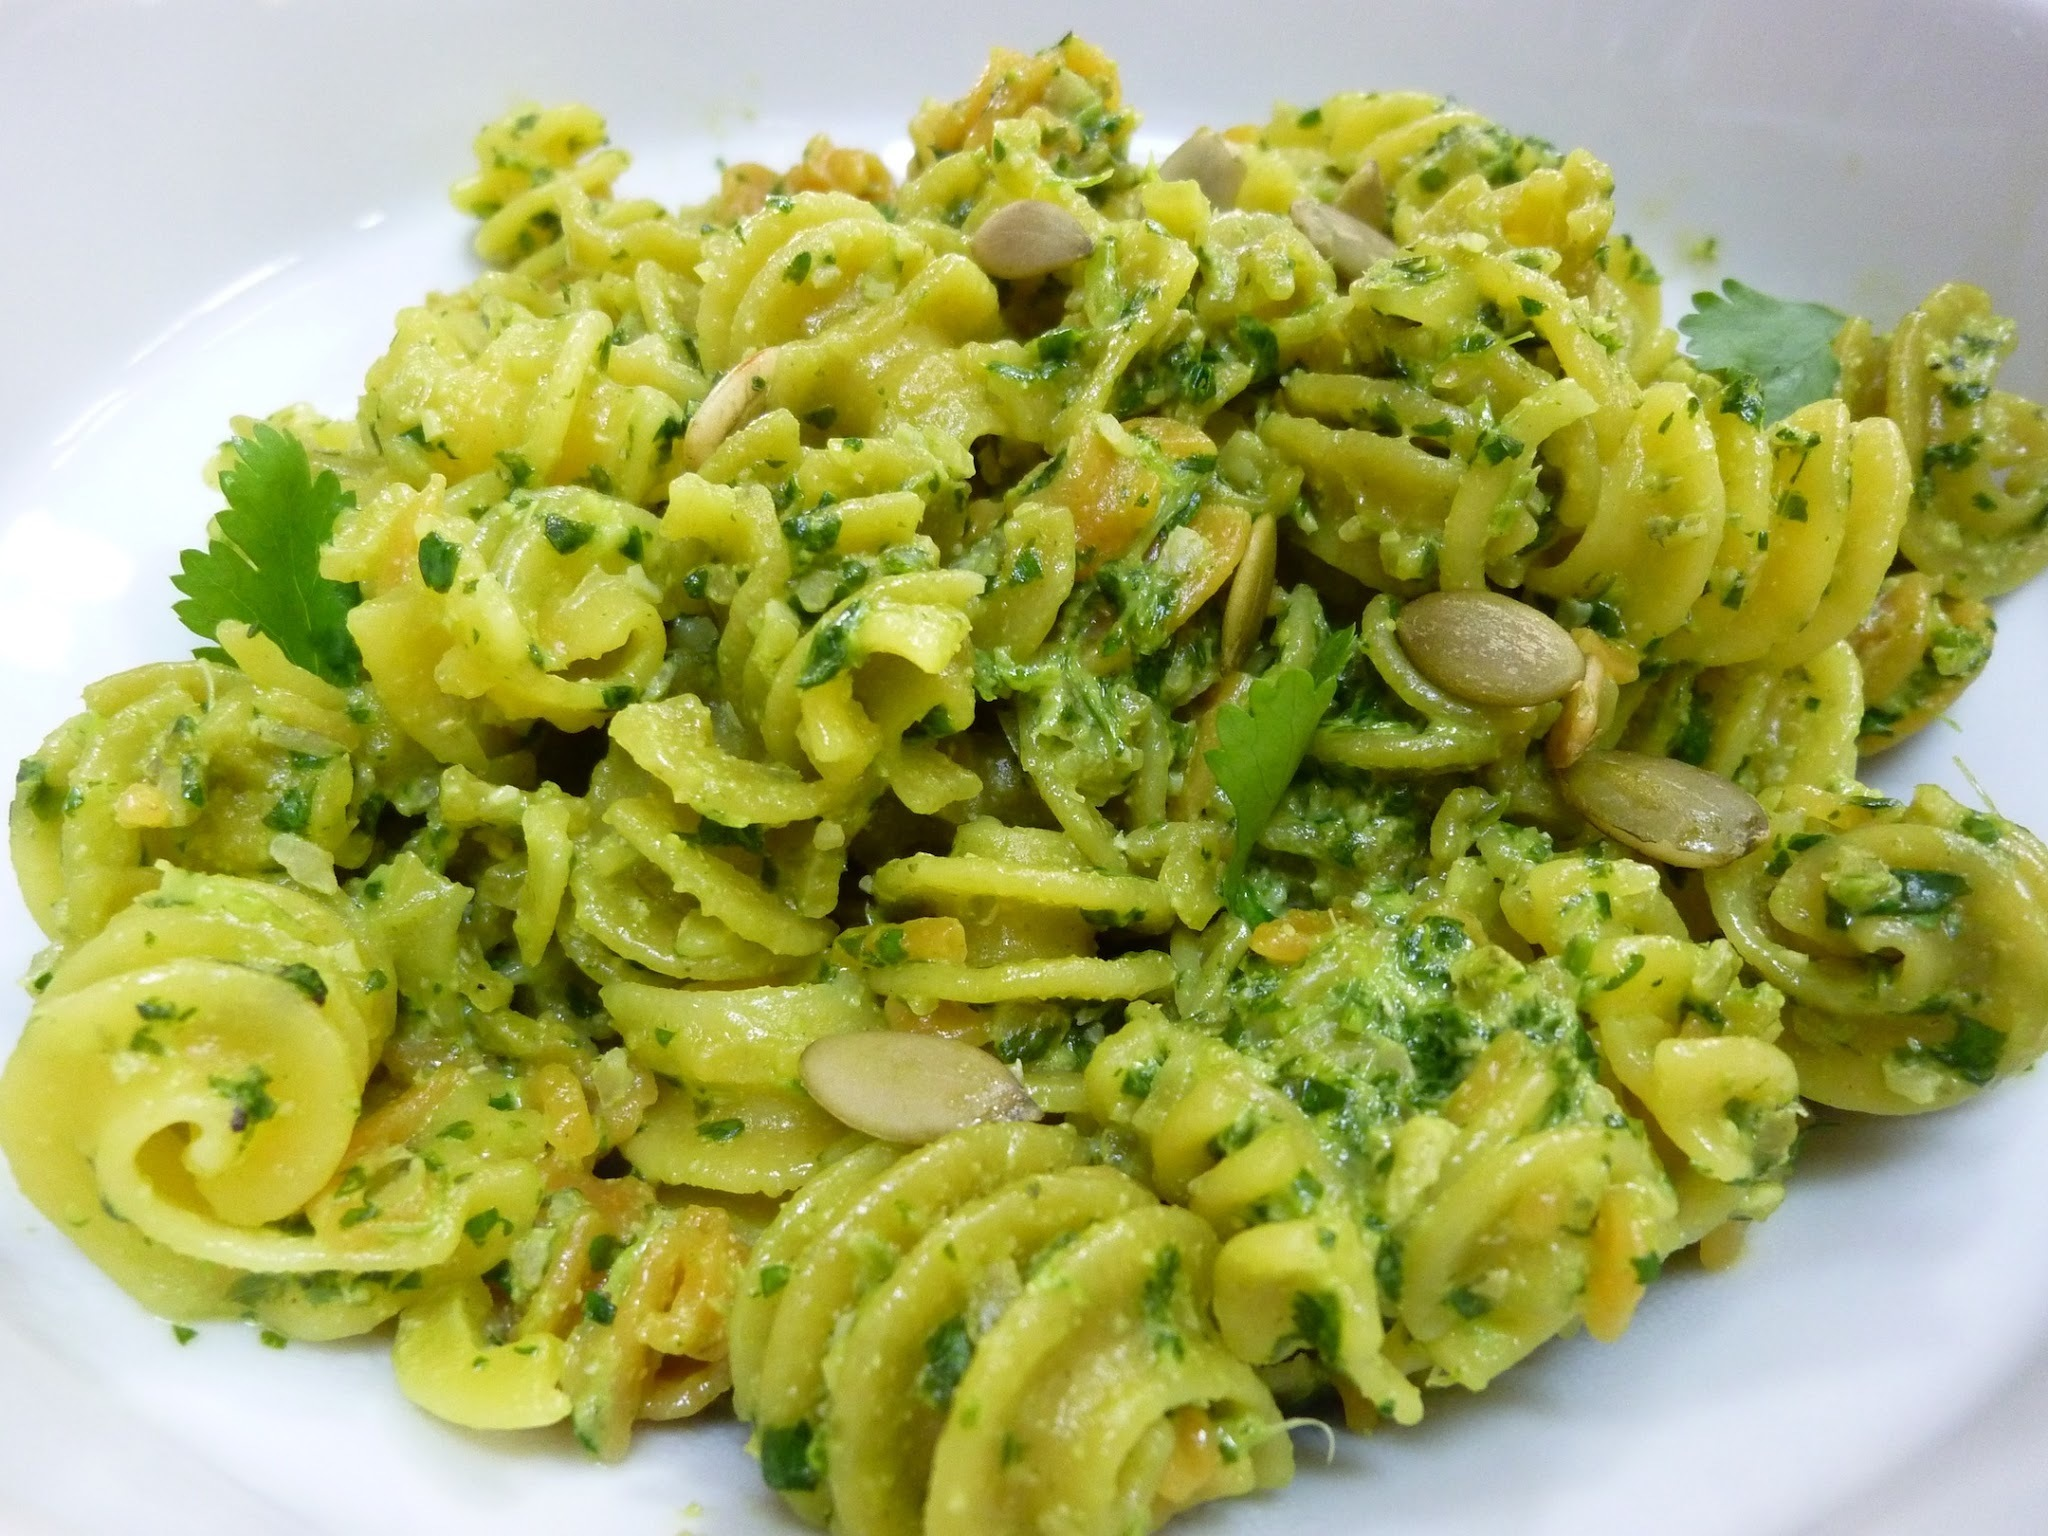 Raw Vegan Cilantro And Pepitas (Sunflower Seed) Pesto On Gluten-Free Pasta - Perfect For Cinco De Mayo!